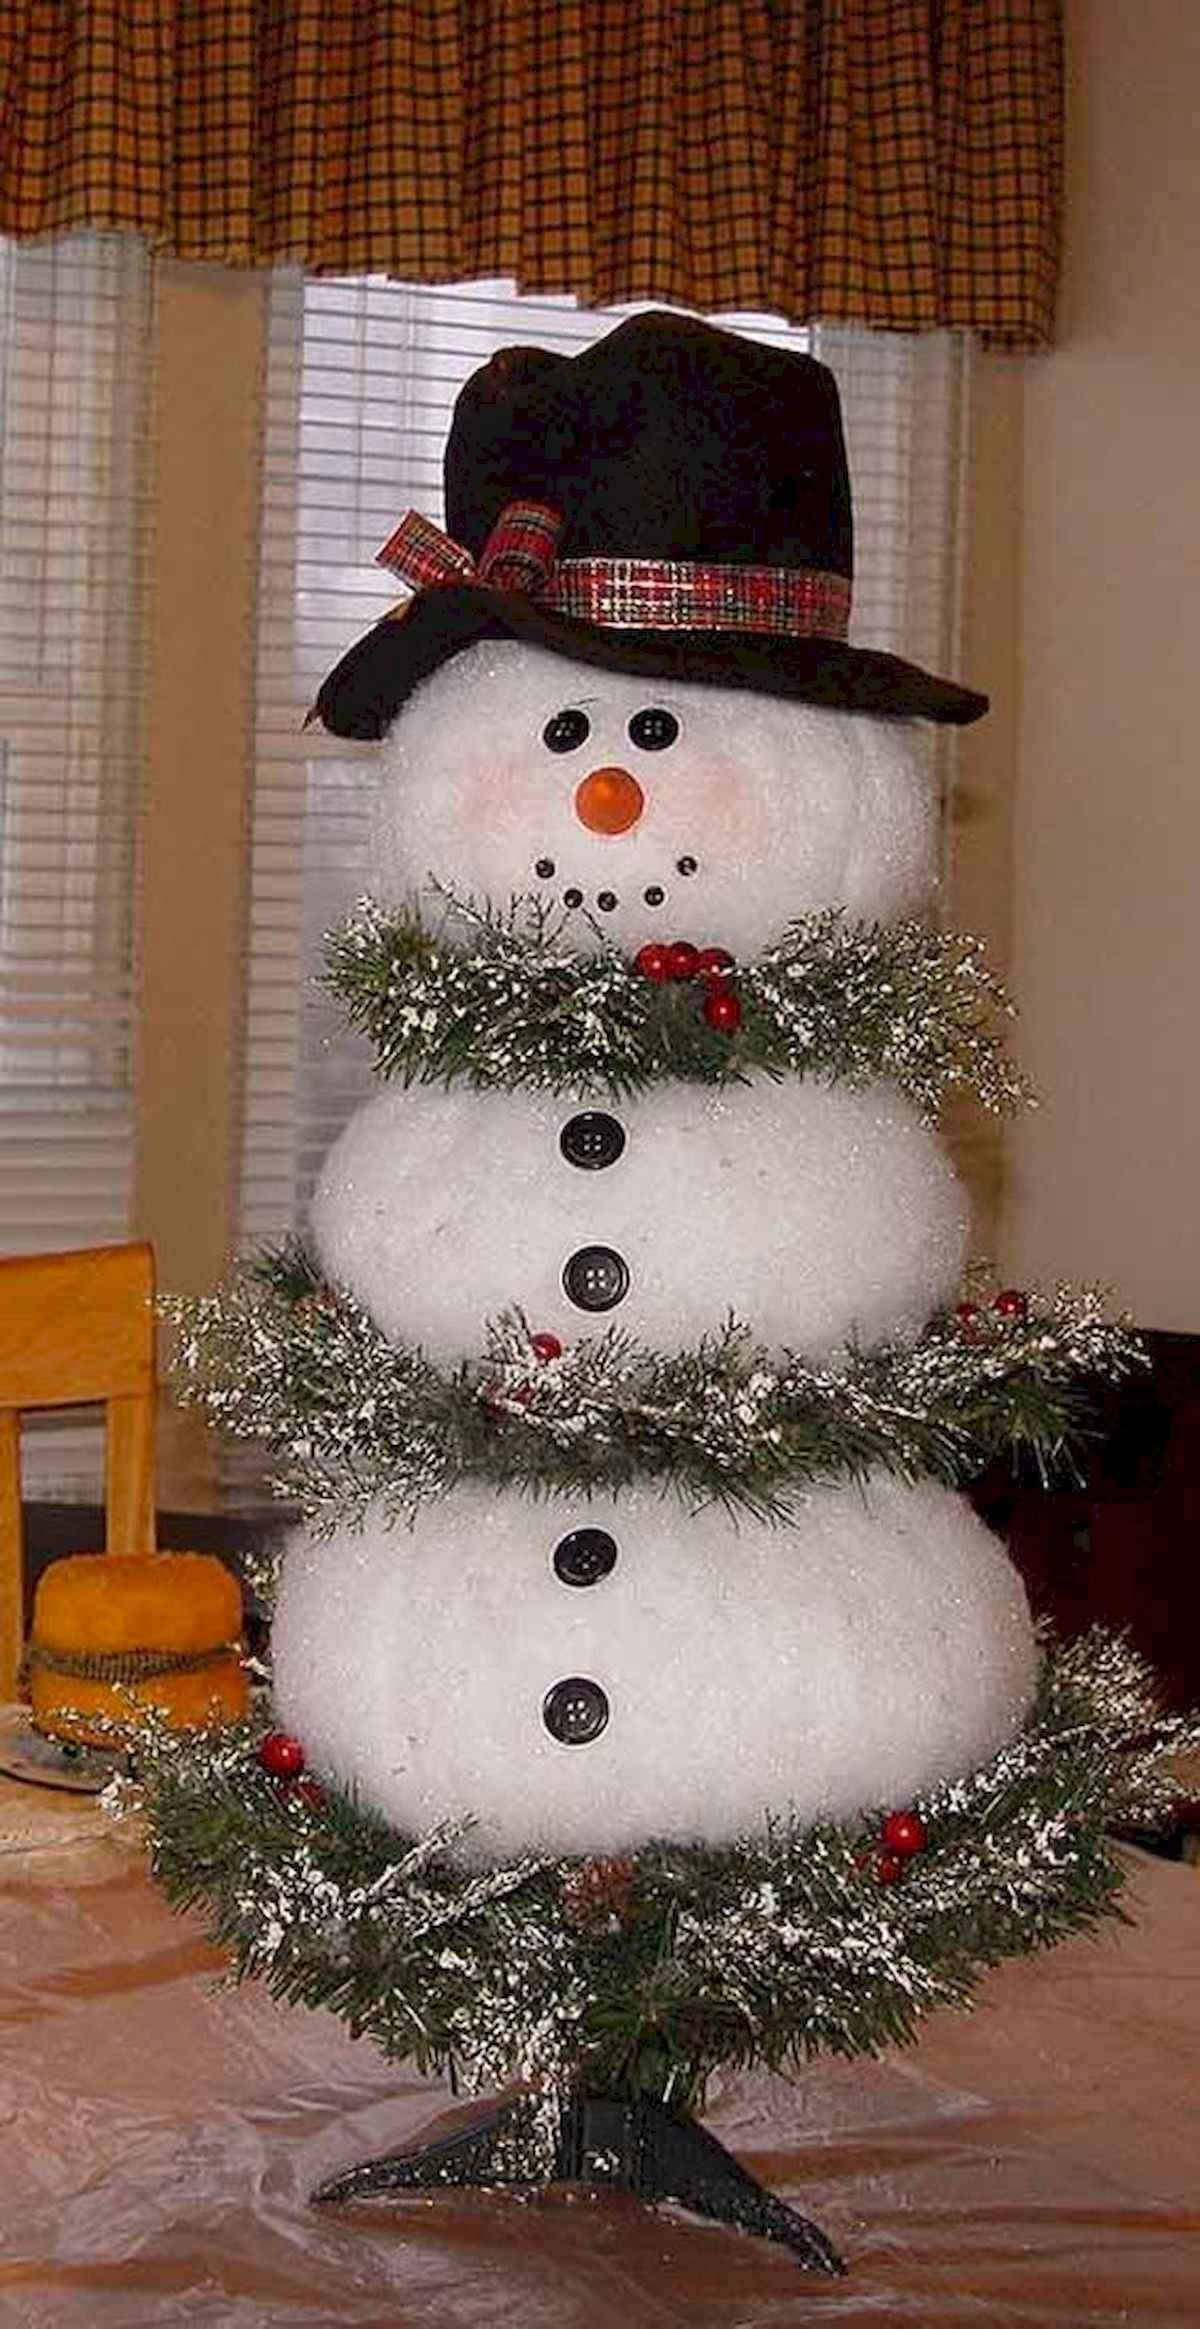 60 awesome christmas tree decorations ideas (42)